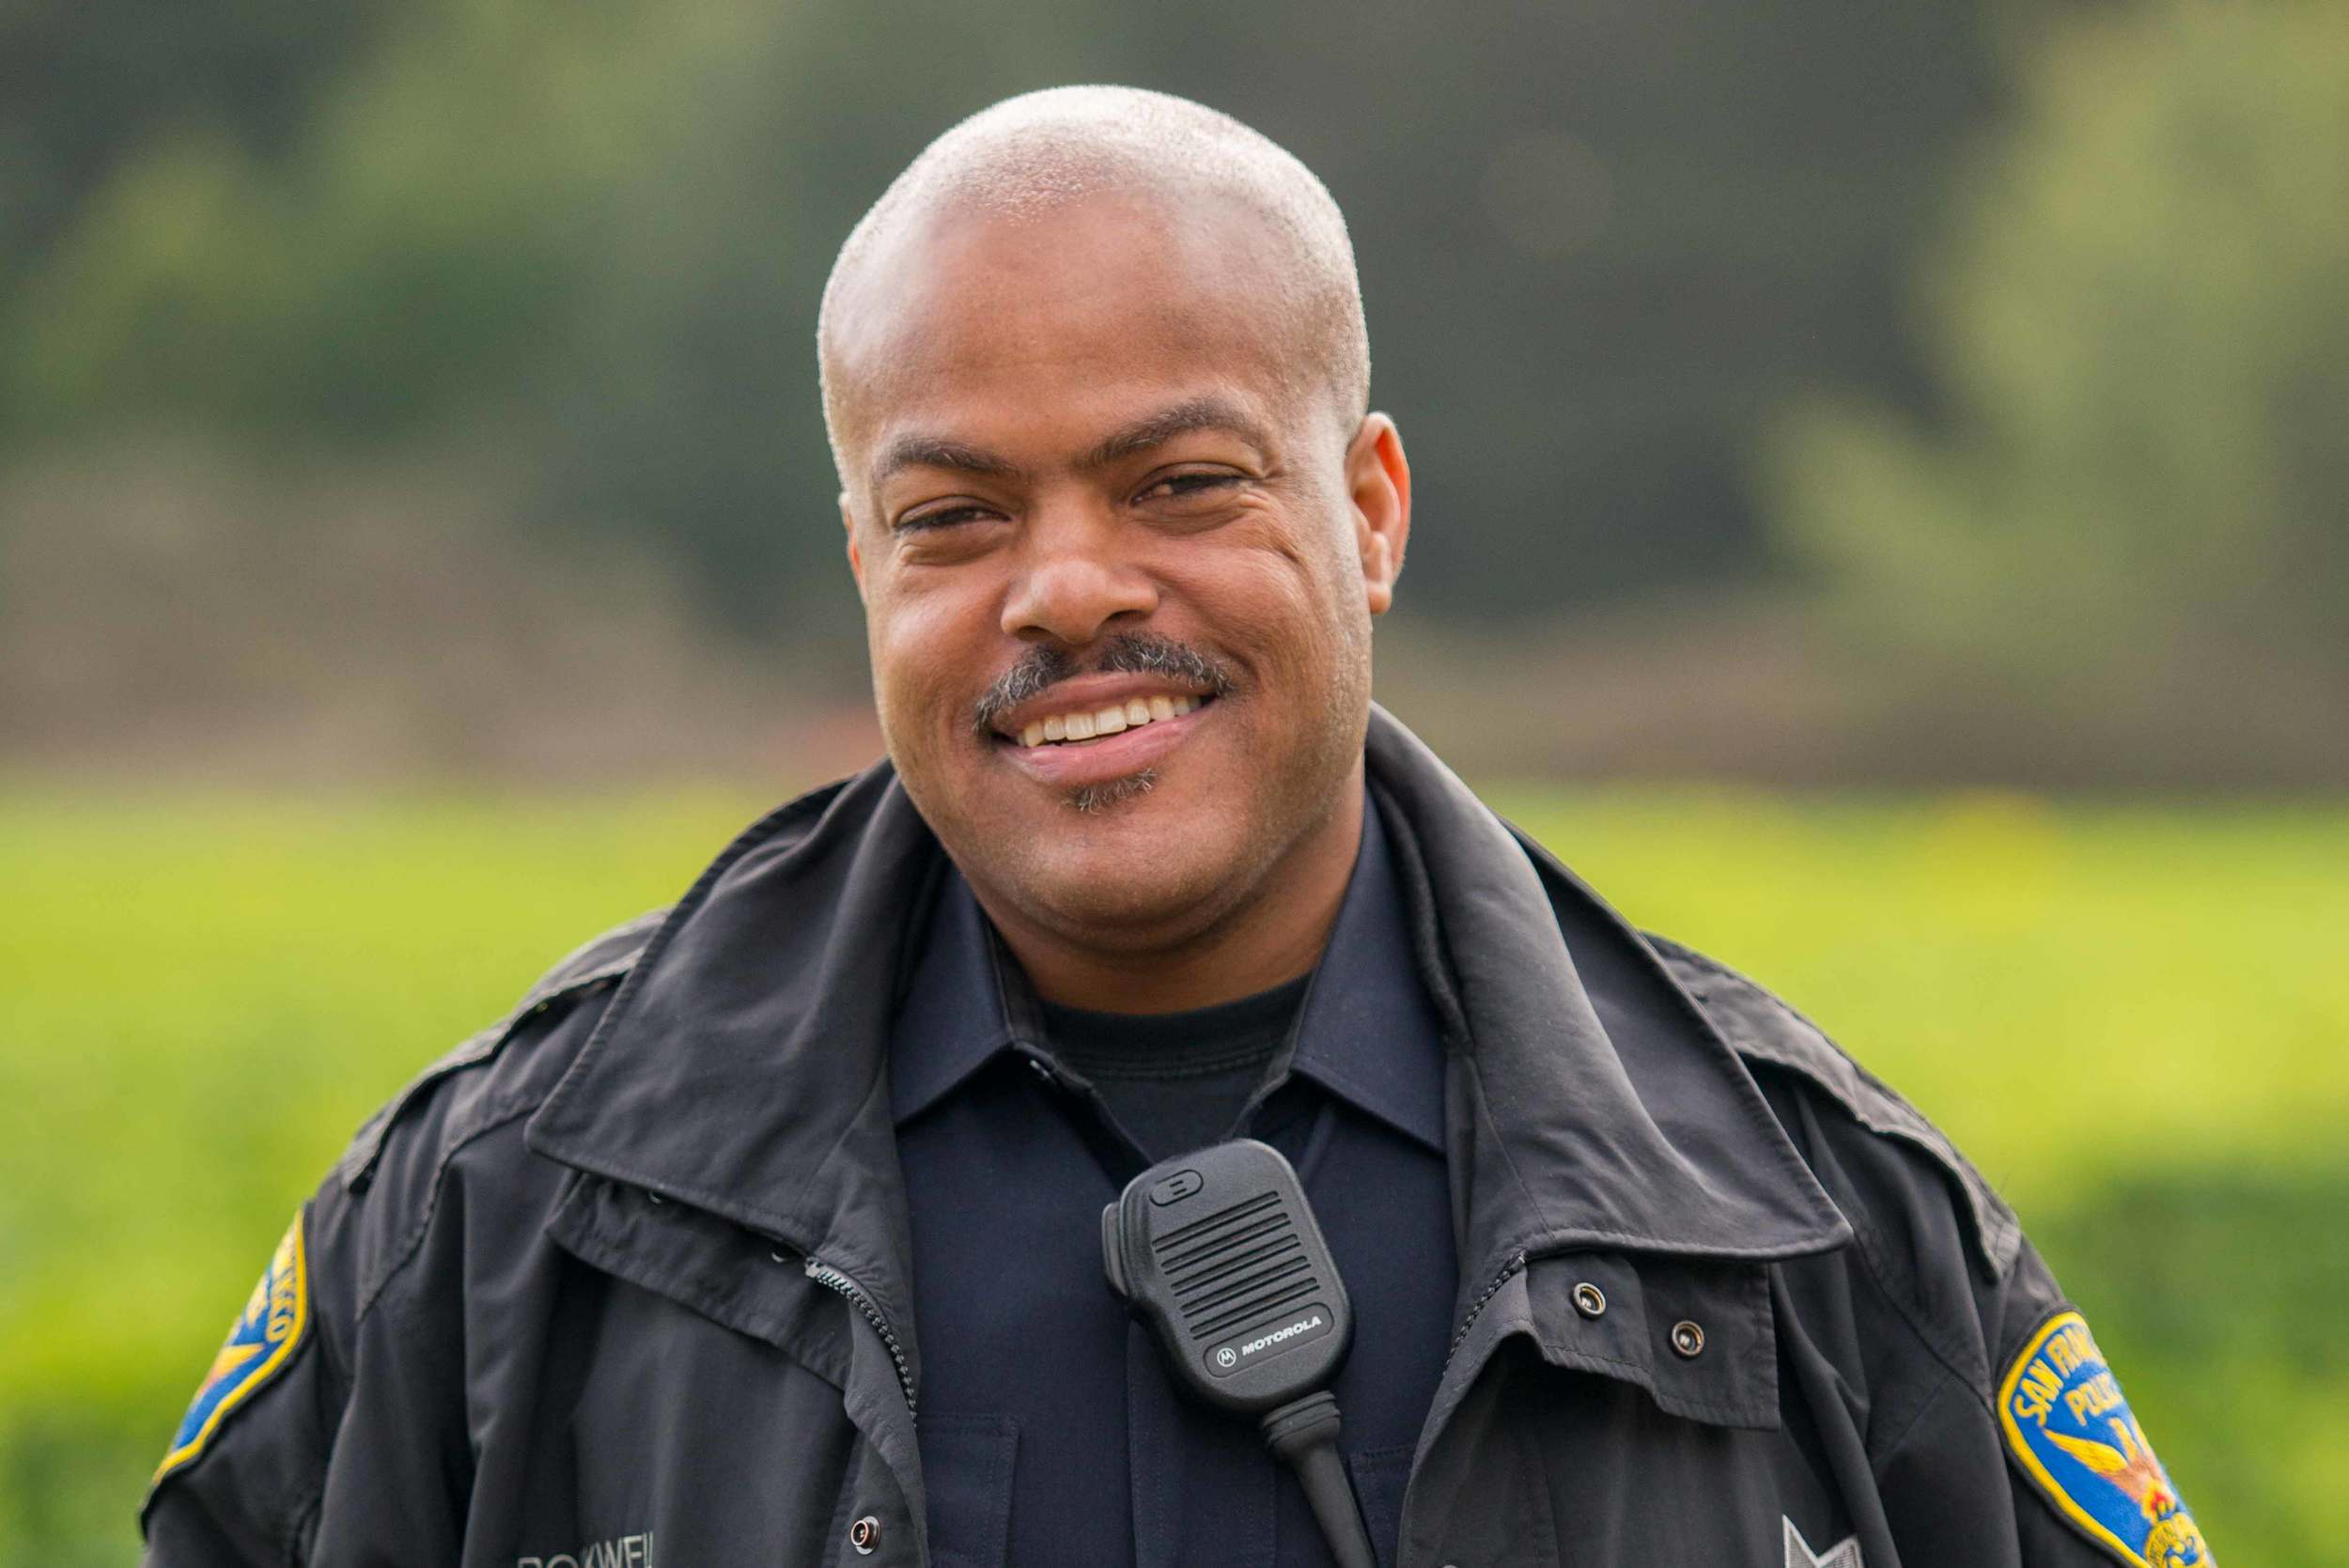 Officer Raphael Rockwell /  San Francisco Police Department